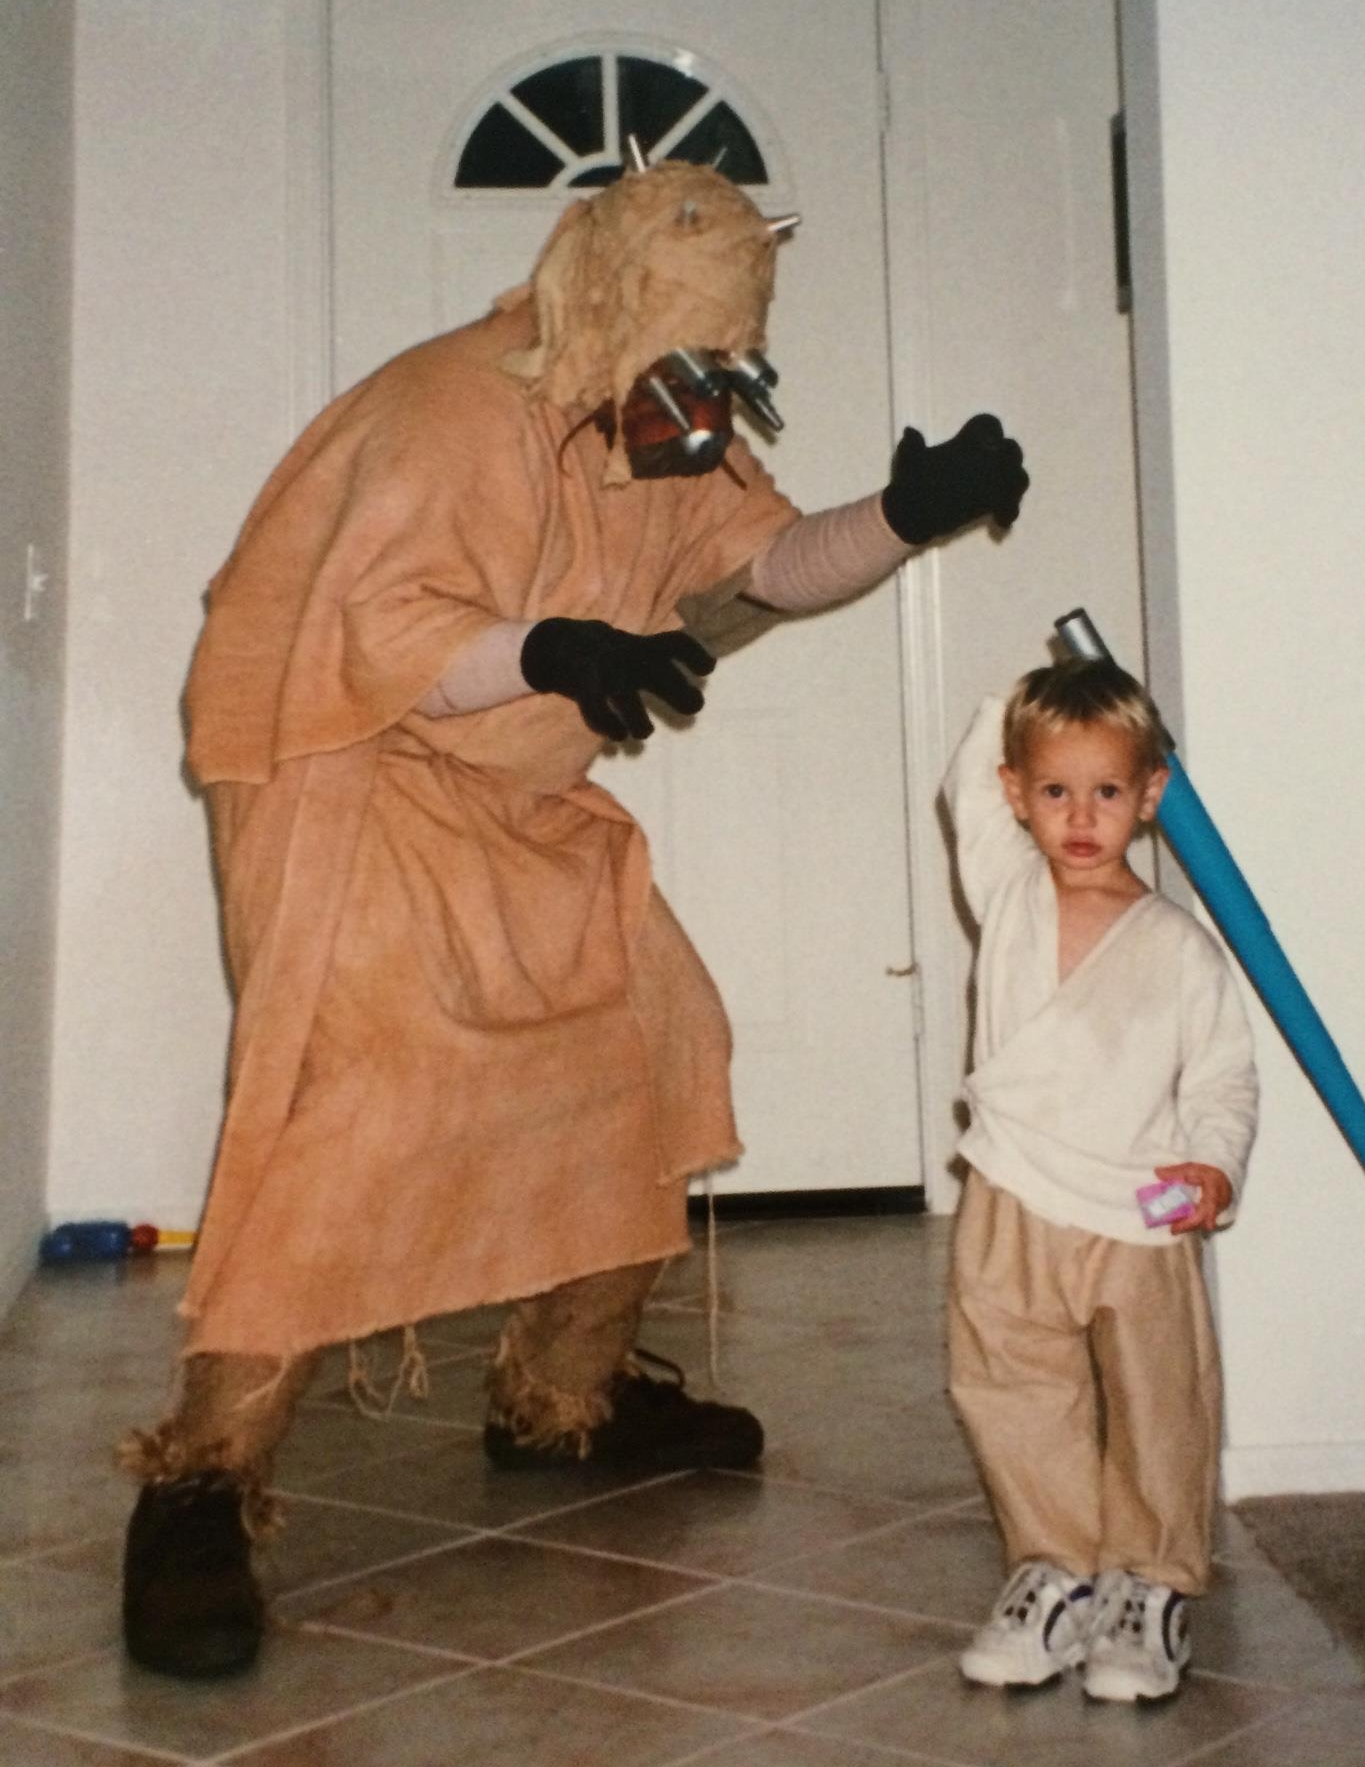 Me in my unfinished and kludged Tusken Raider costume. My son Austin in his custom made Luke Skywalker costume (minus the shoes, leg wraps, belt, macro binoculars and custom scaled lightsaber I built and he refused to wear, little bastard)